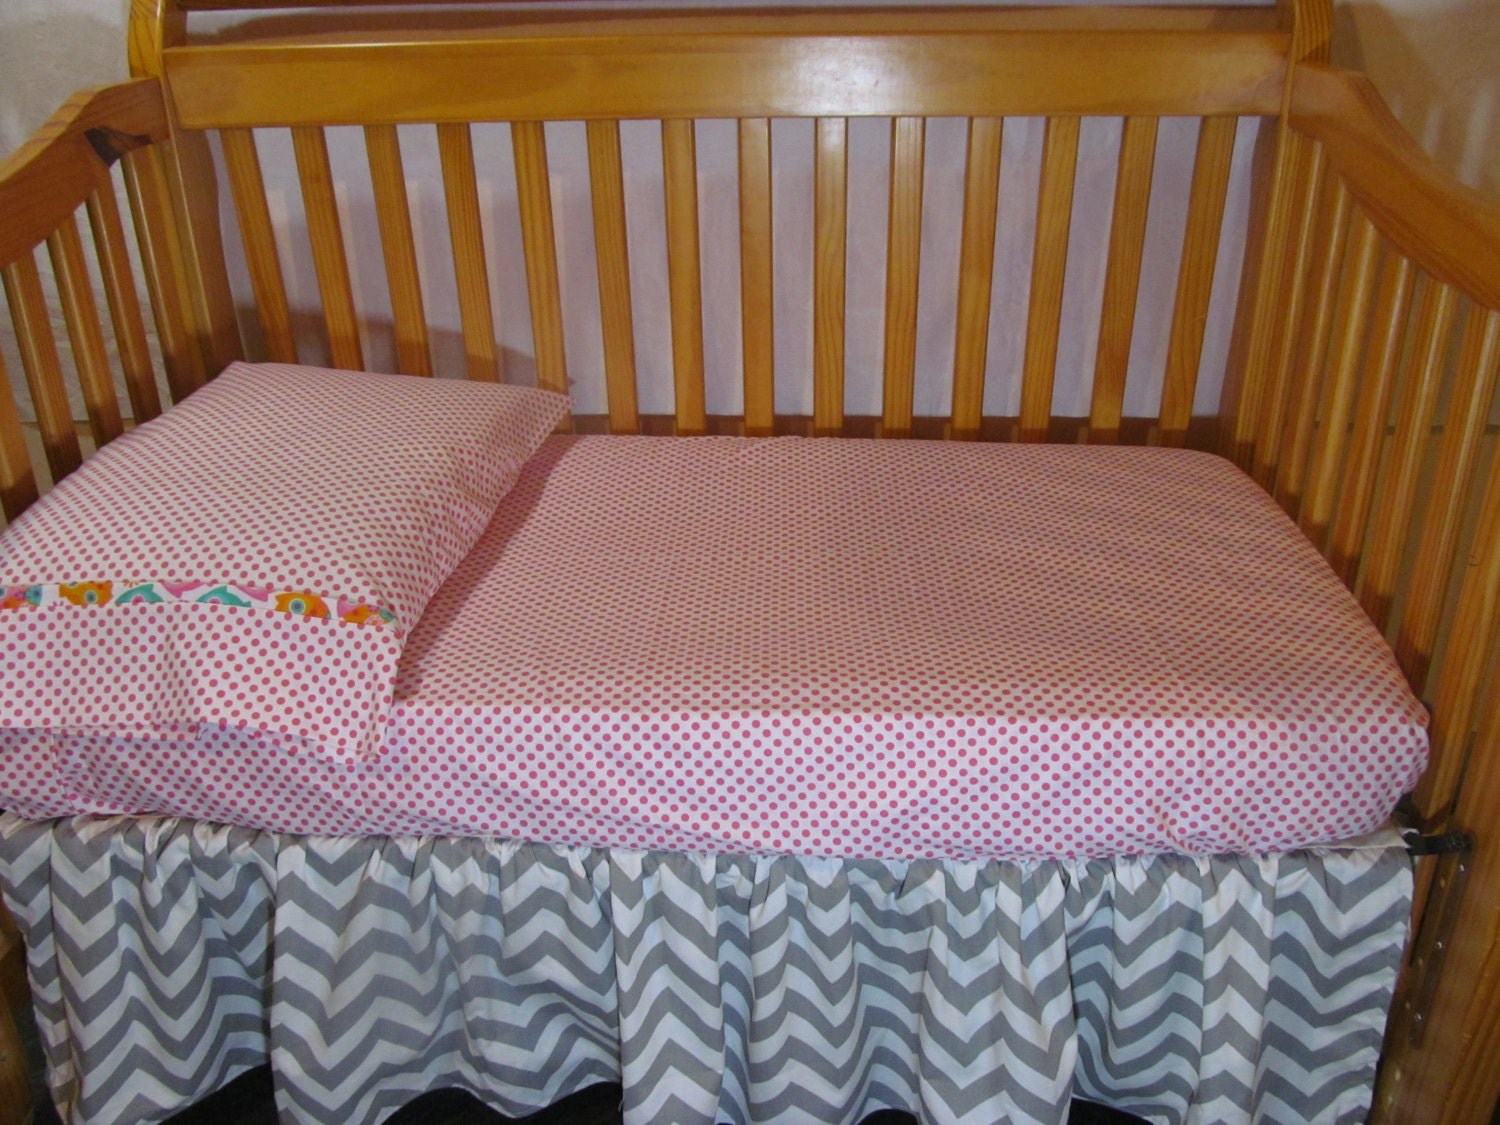 Toddler bed sheet set fitted sheet top sheet fitted foot or How to put a fitted sheet on a bed